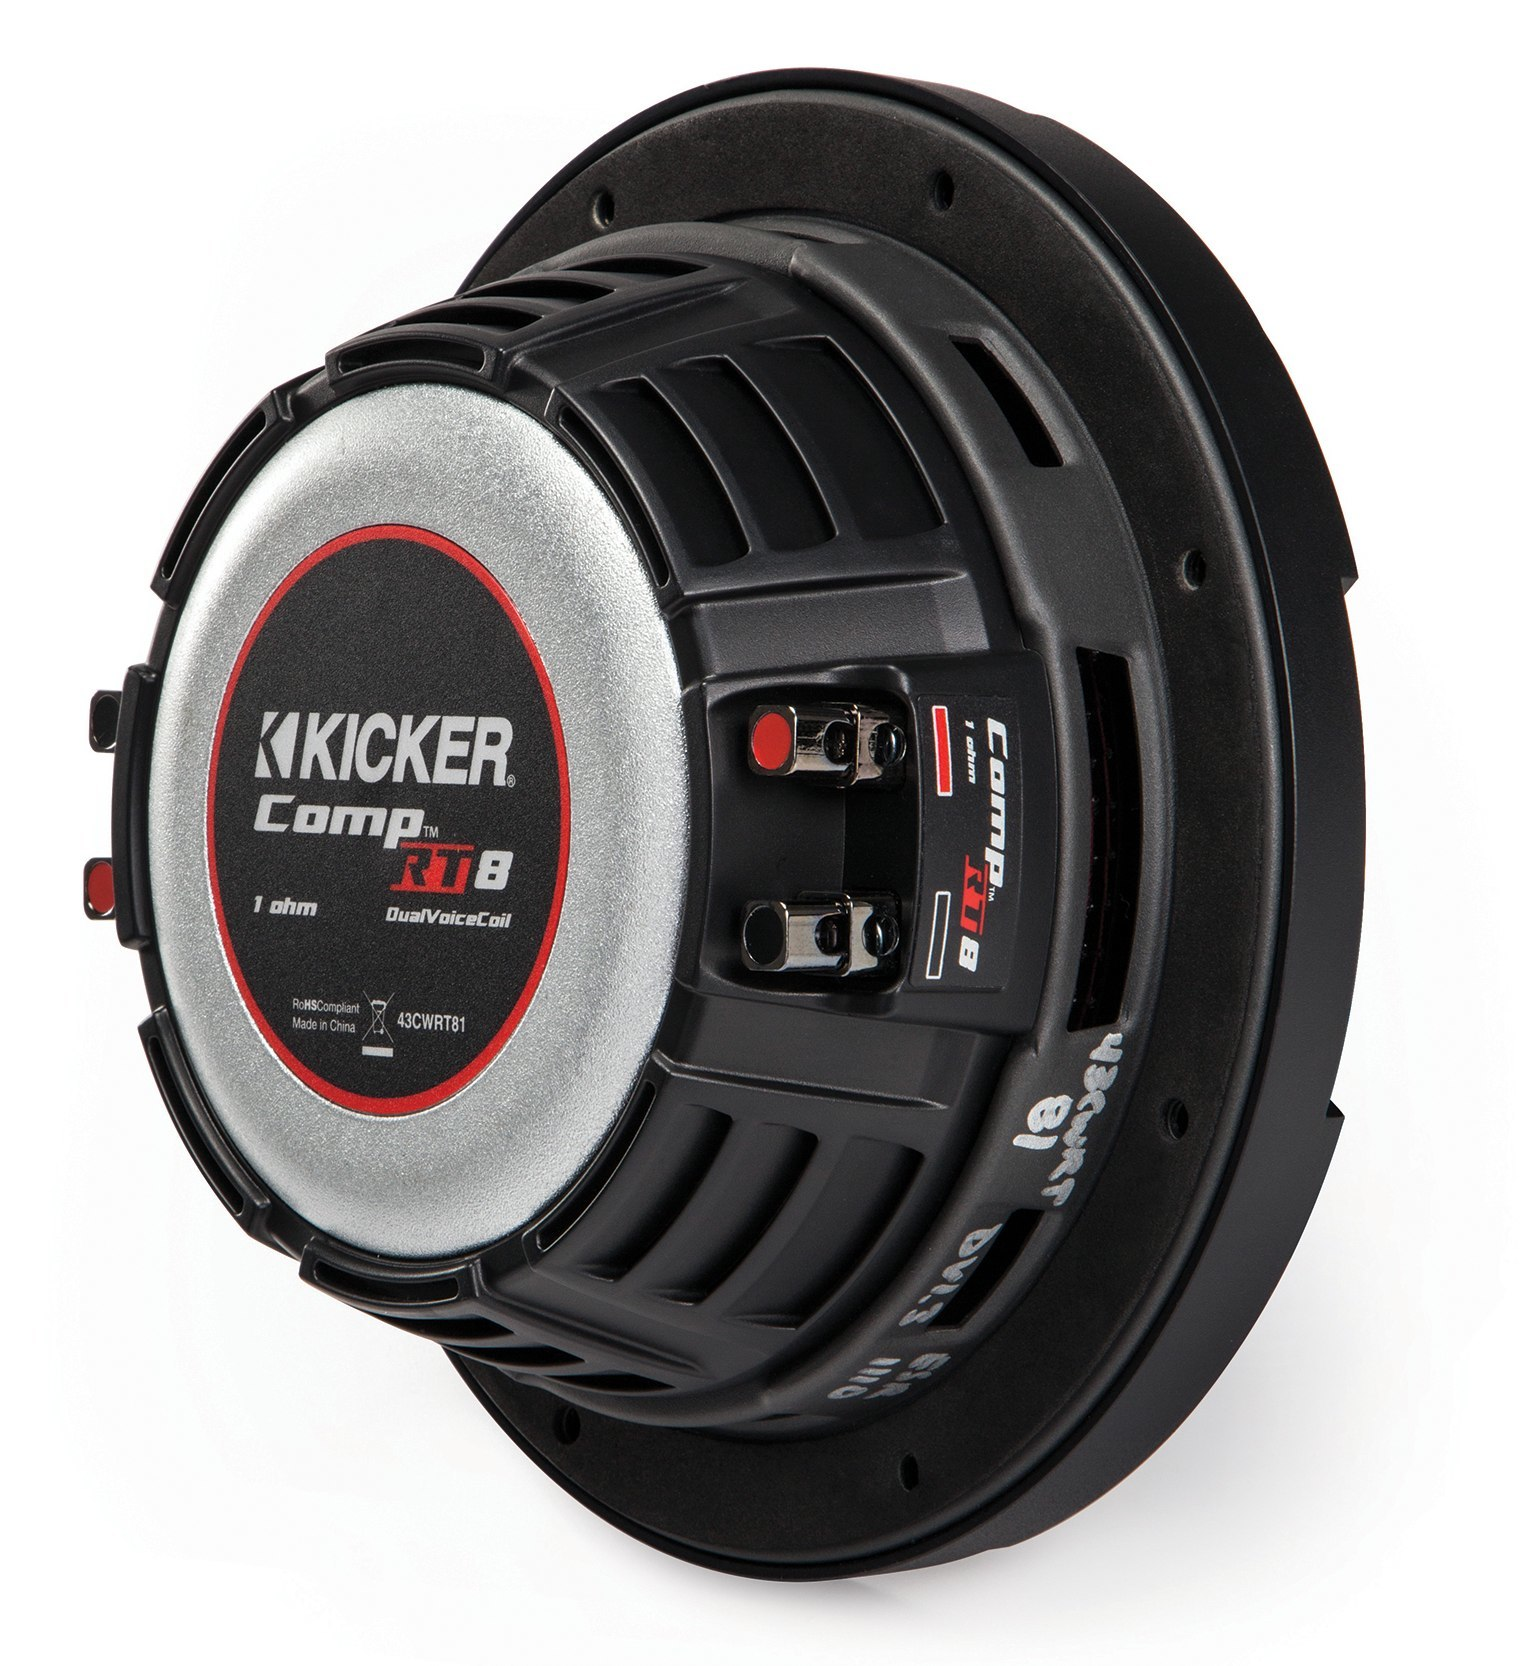 kicker subwoofer flach cwrt82 43 2x 2ohm 600w 20cm. Black Bedroom Furniture Sets. Home Design Ideas